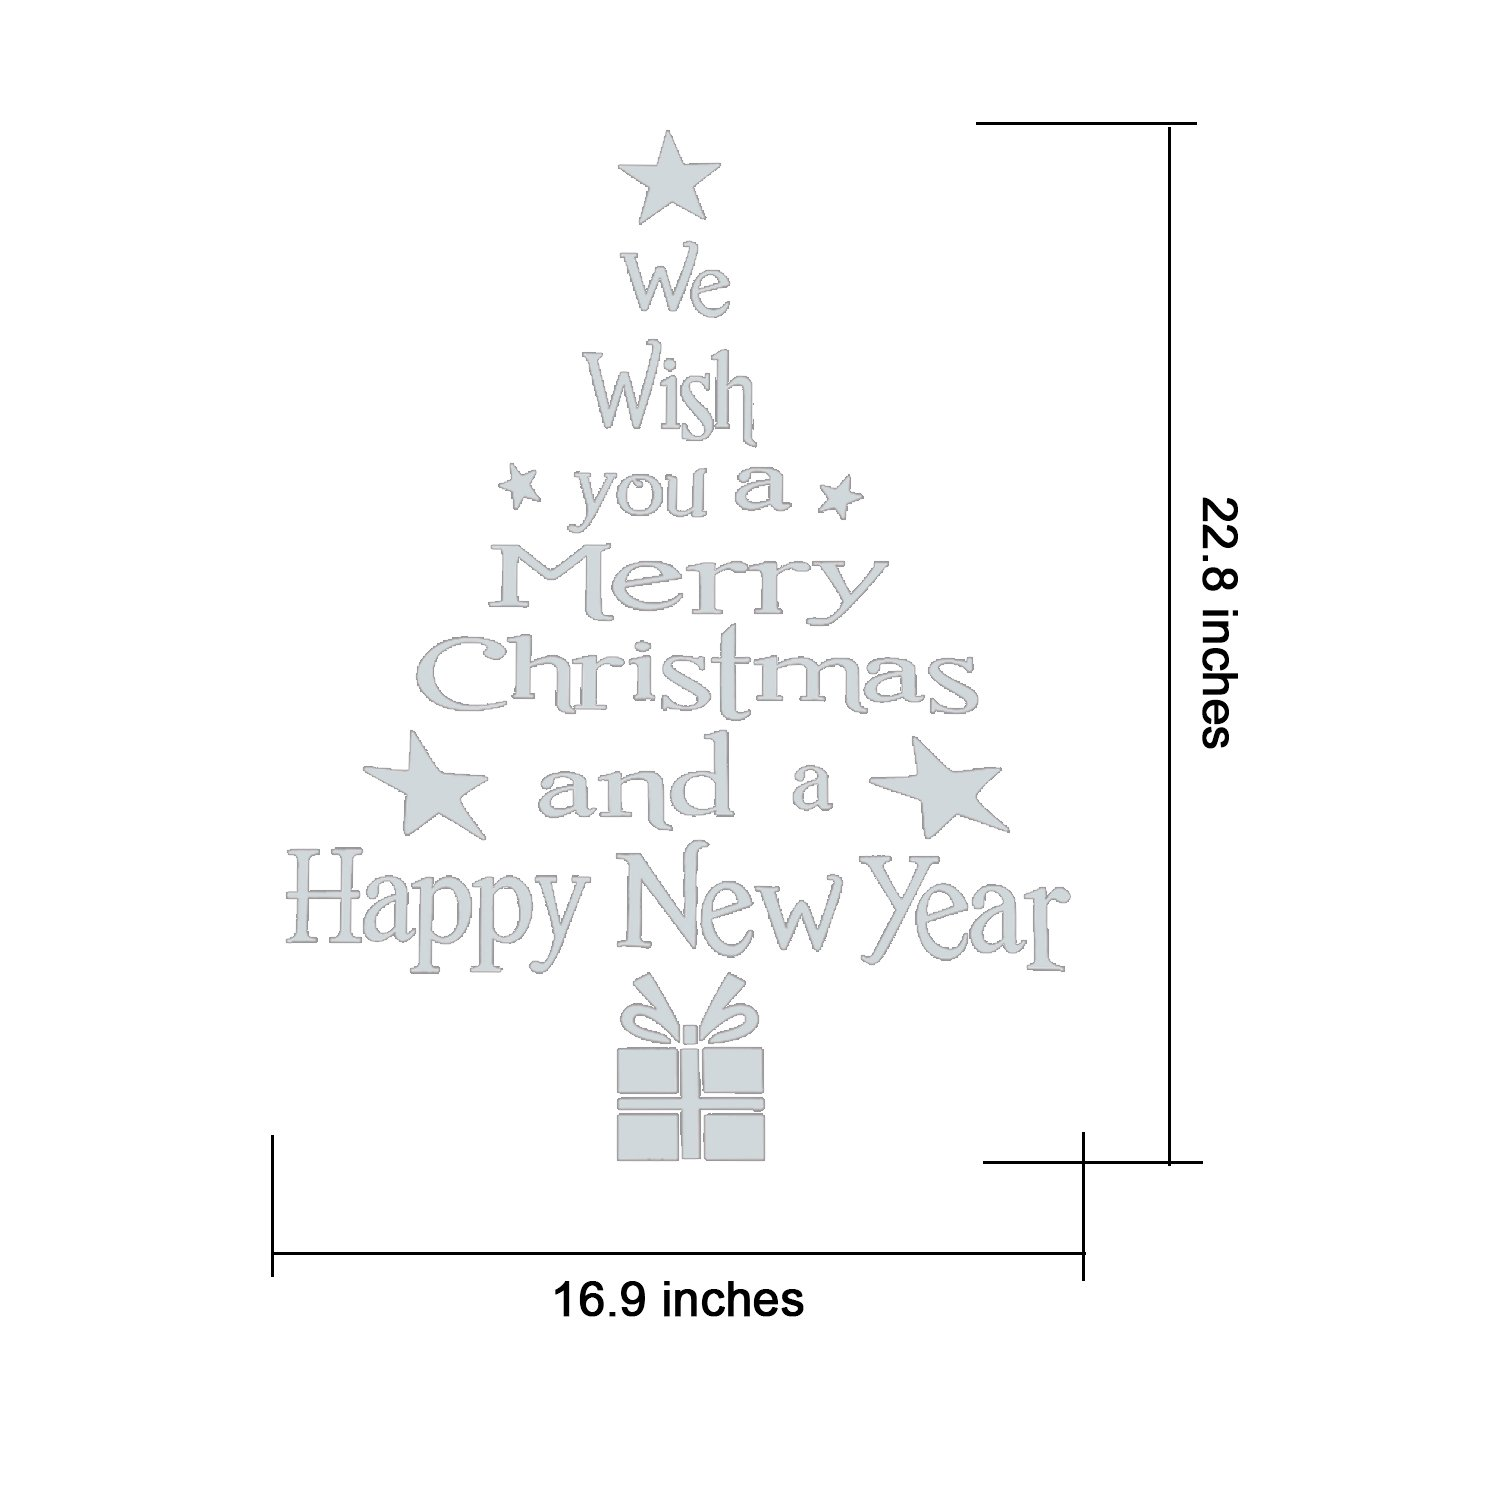 2 Pieces Christmas Wall Decals Letters And Christmas Tree Stickers